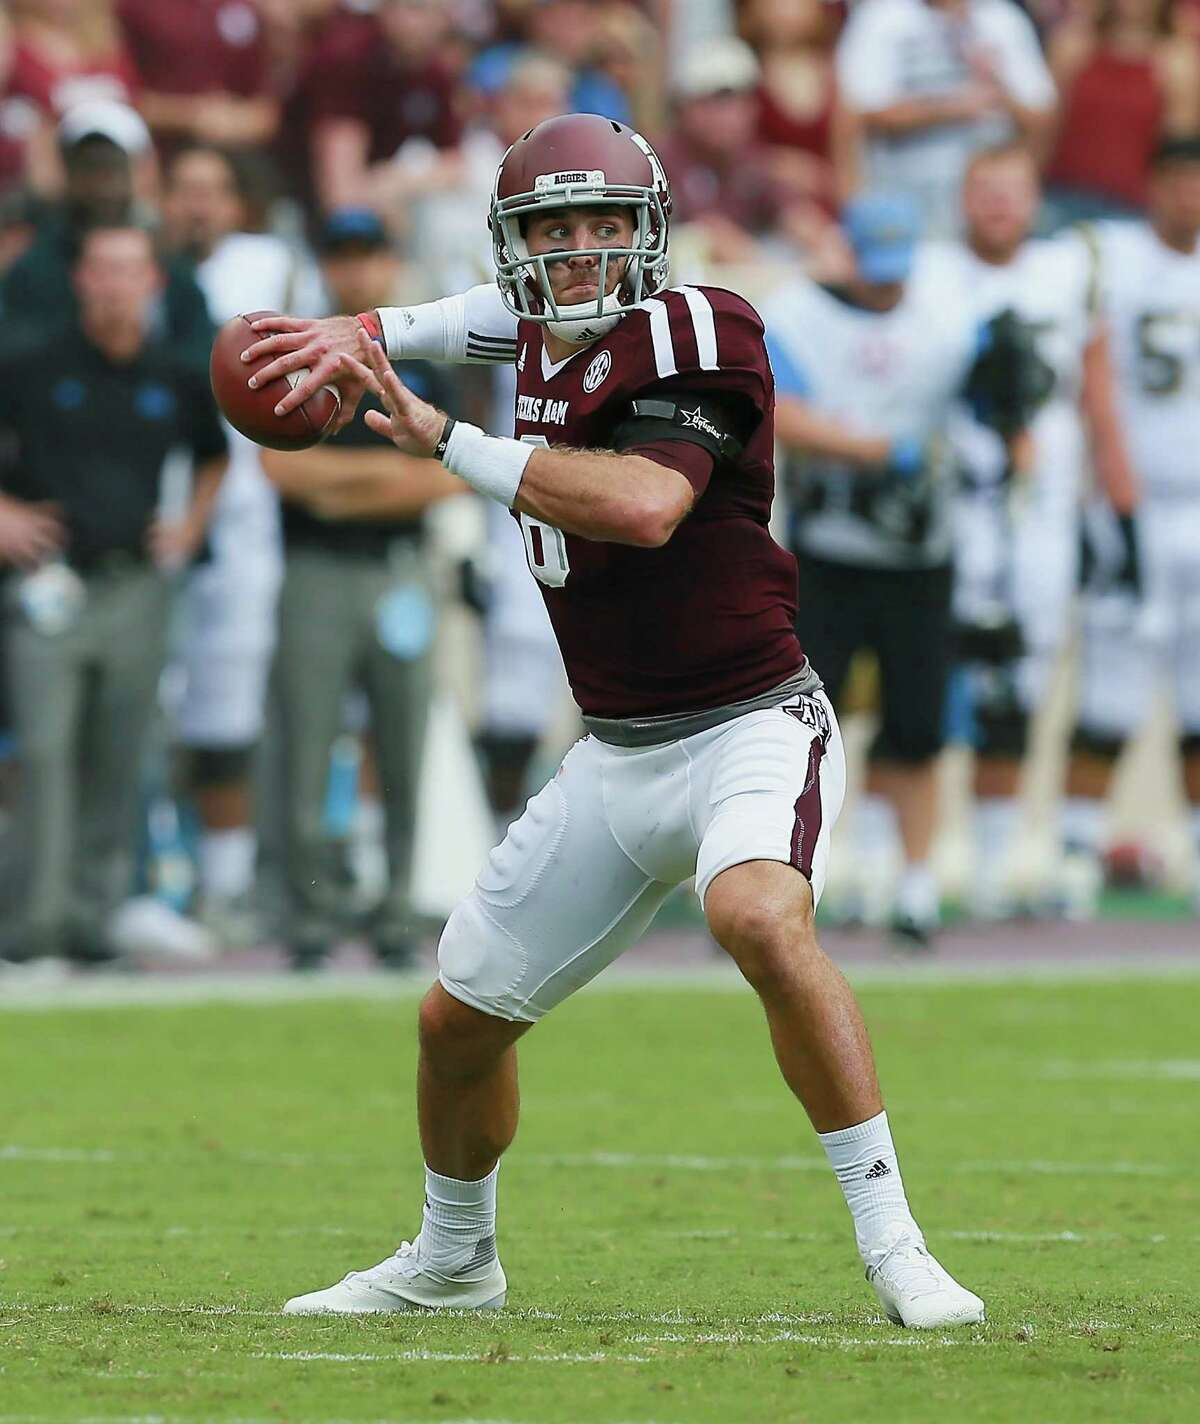 Sept. 3: Texas A&M 31, UCLA 24 (OT) The Aggies overcame a late collapse to outlast the Bruins in overtime. Quarterback Trevor Knight threw for 239 yards with a touchdown and interception. Record: 1-0